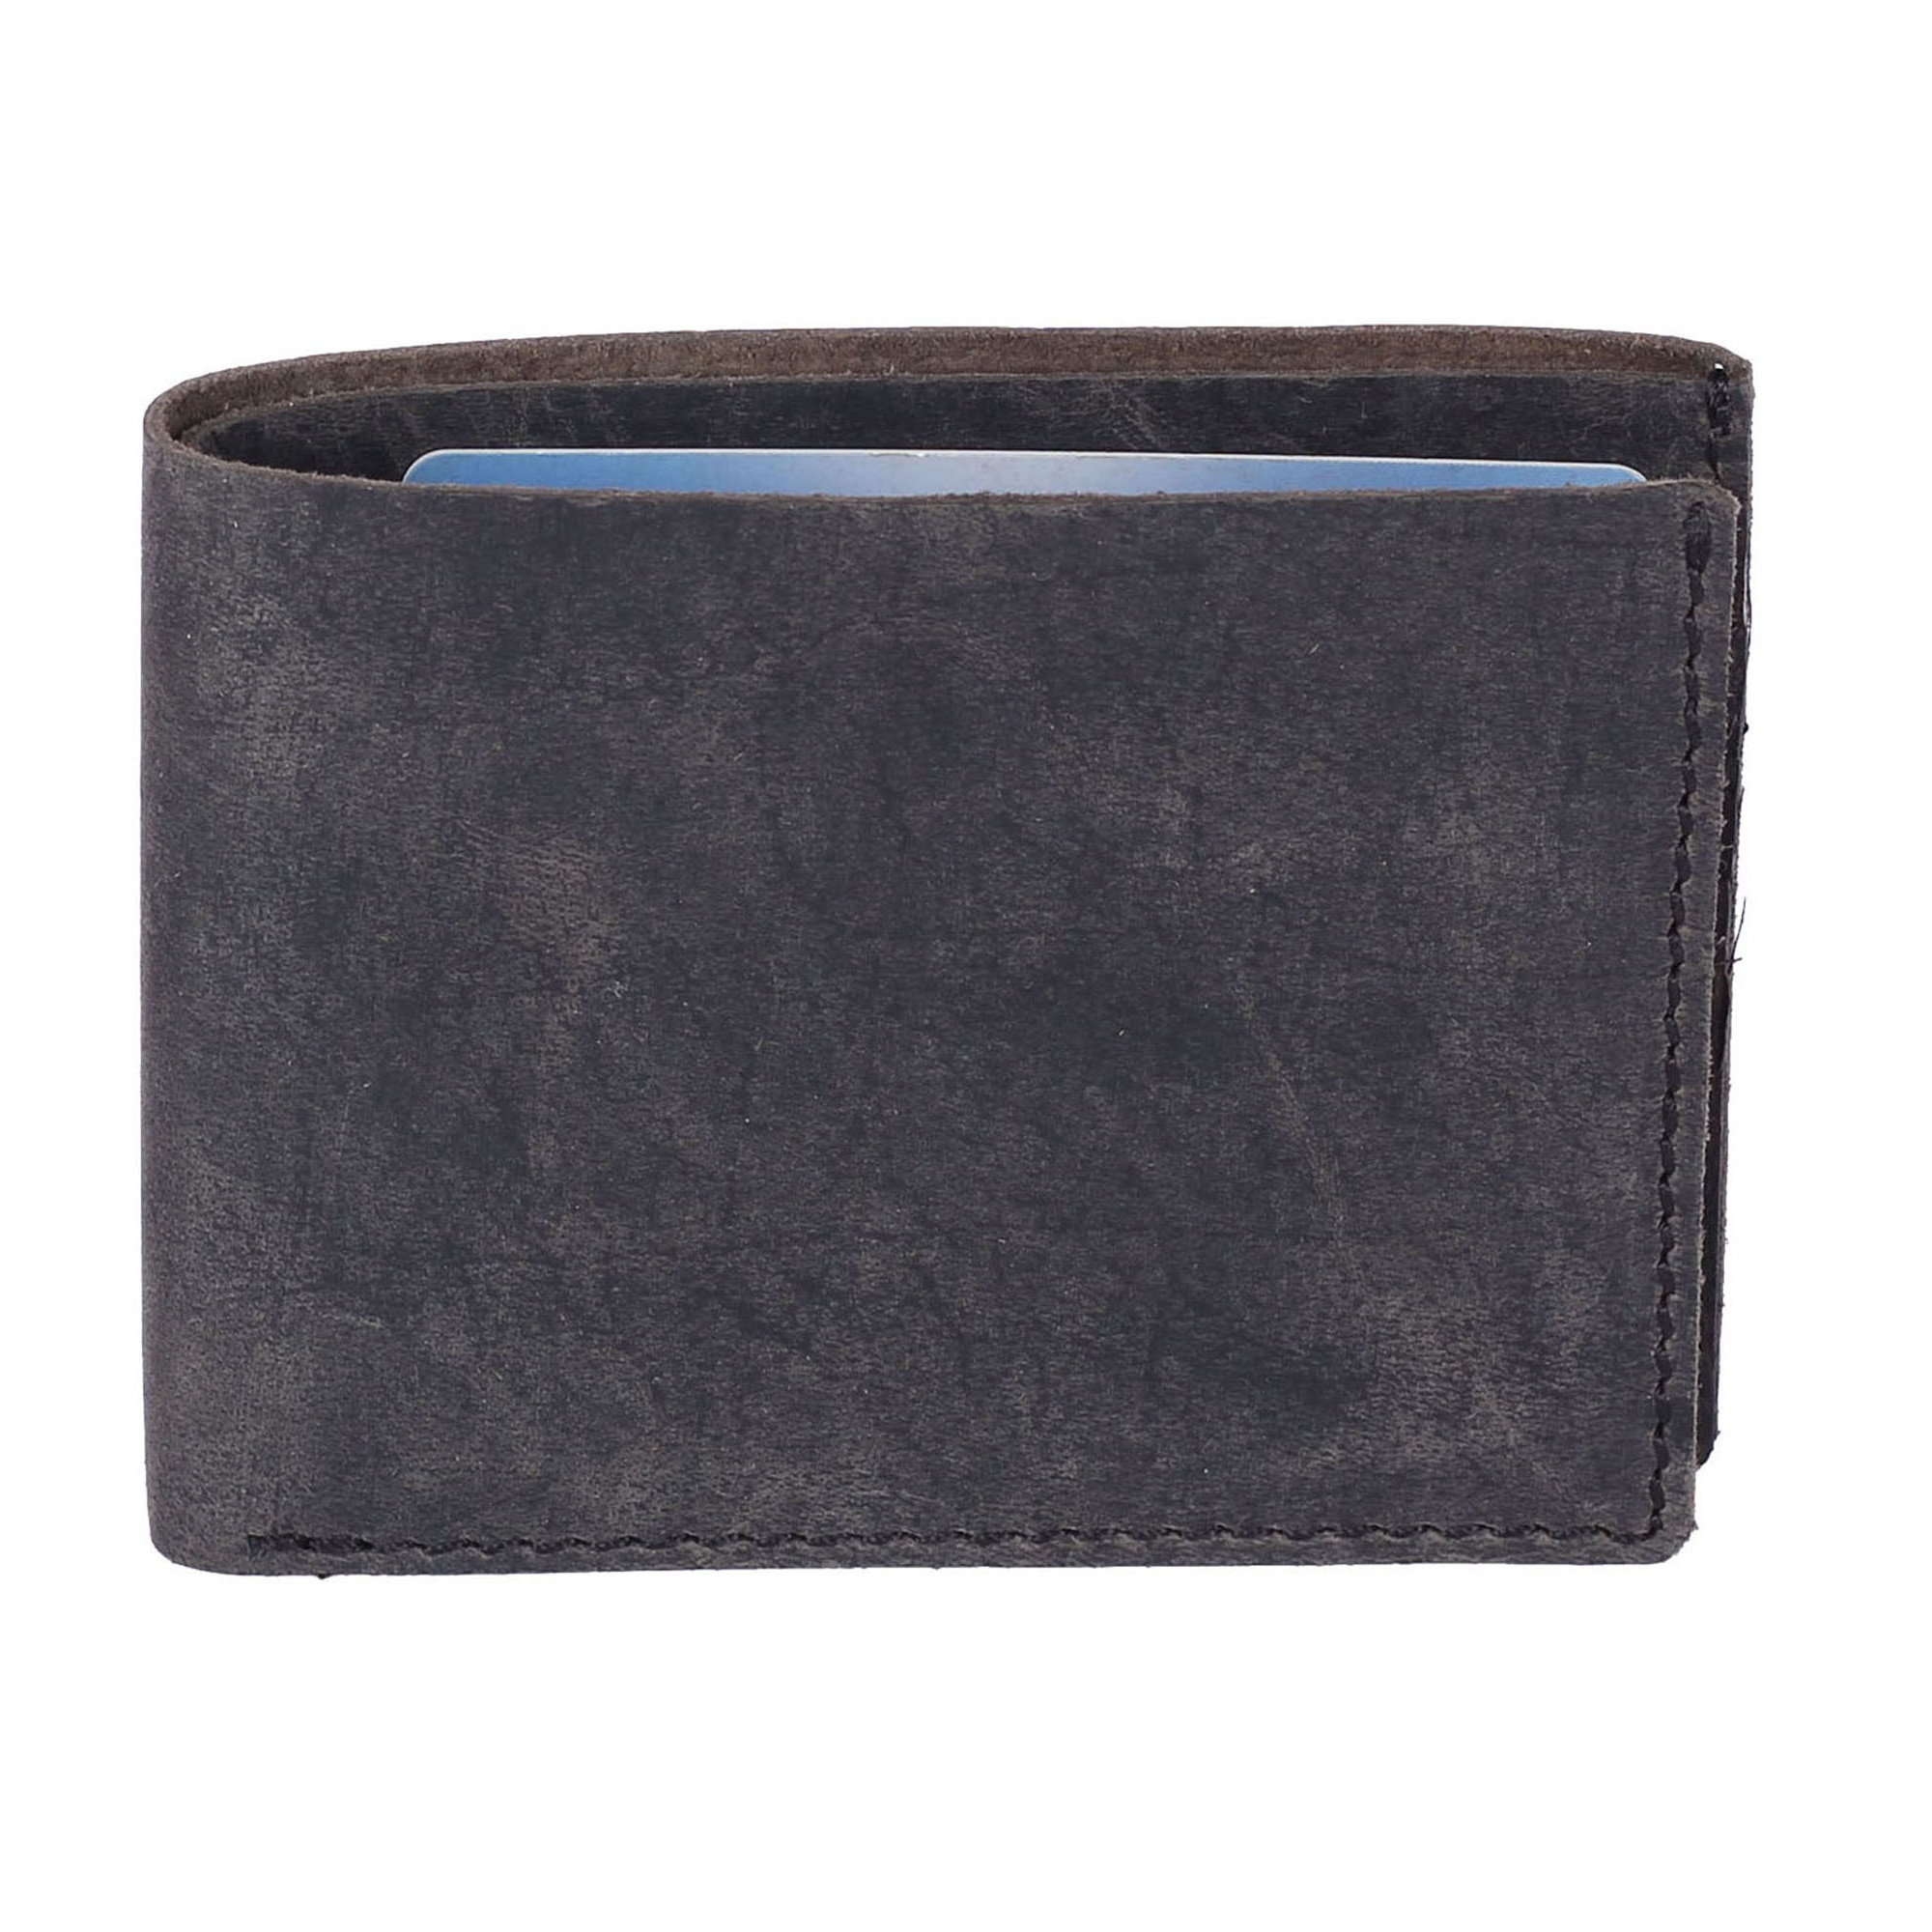 Leather Wallets Manufacturers in Ontario, Leather Wallets Suppliers in Ontario, Leather Wallets Wholesalers in Ontario, Leather Wallets Traders in Ontario